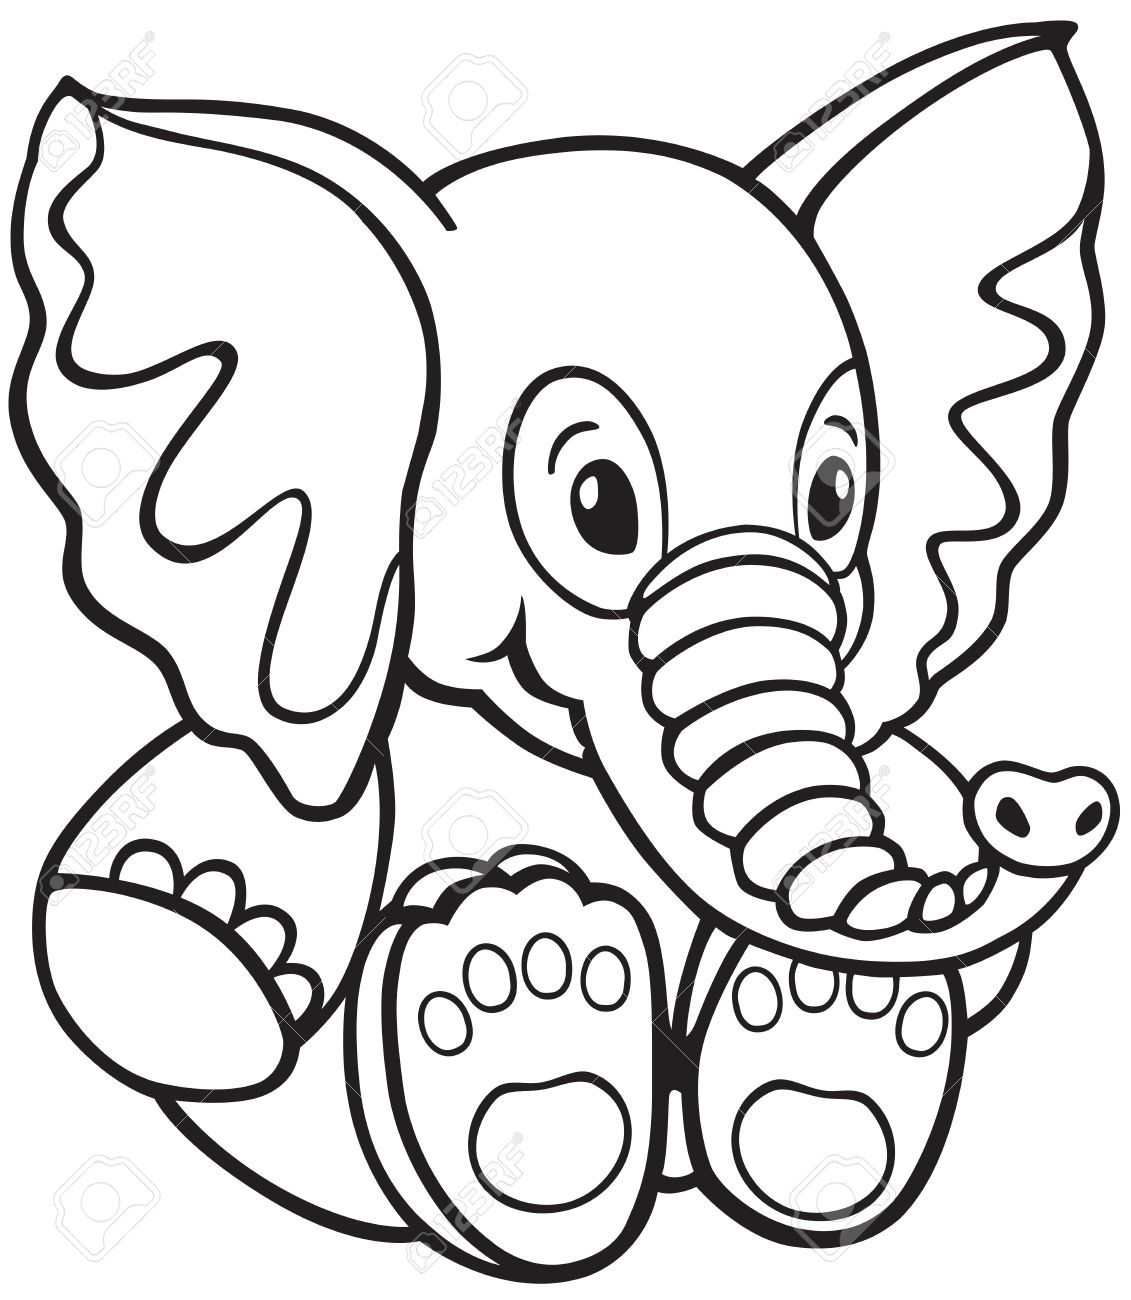 elephant soft toy black and white cartoon image for little